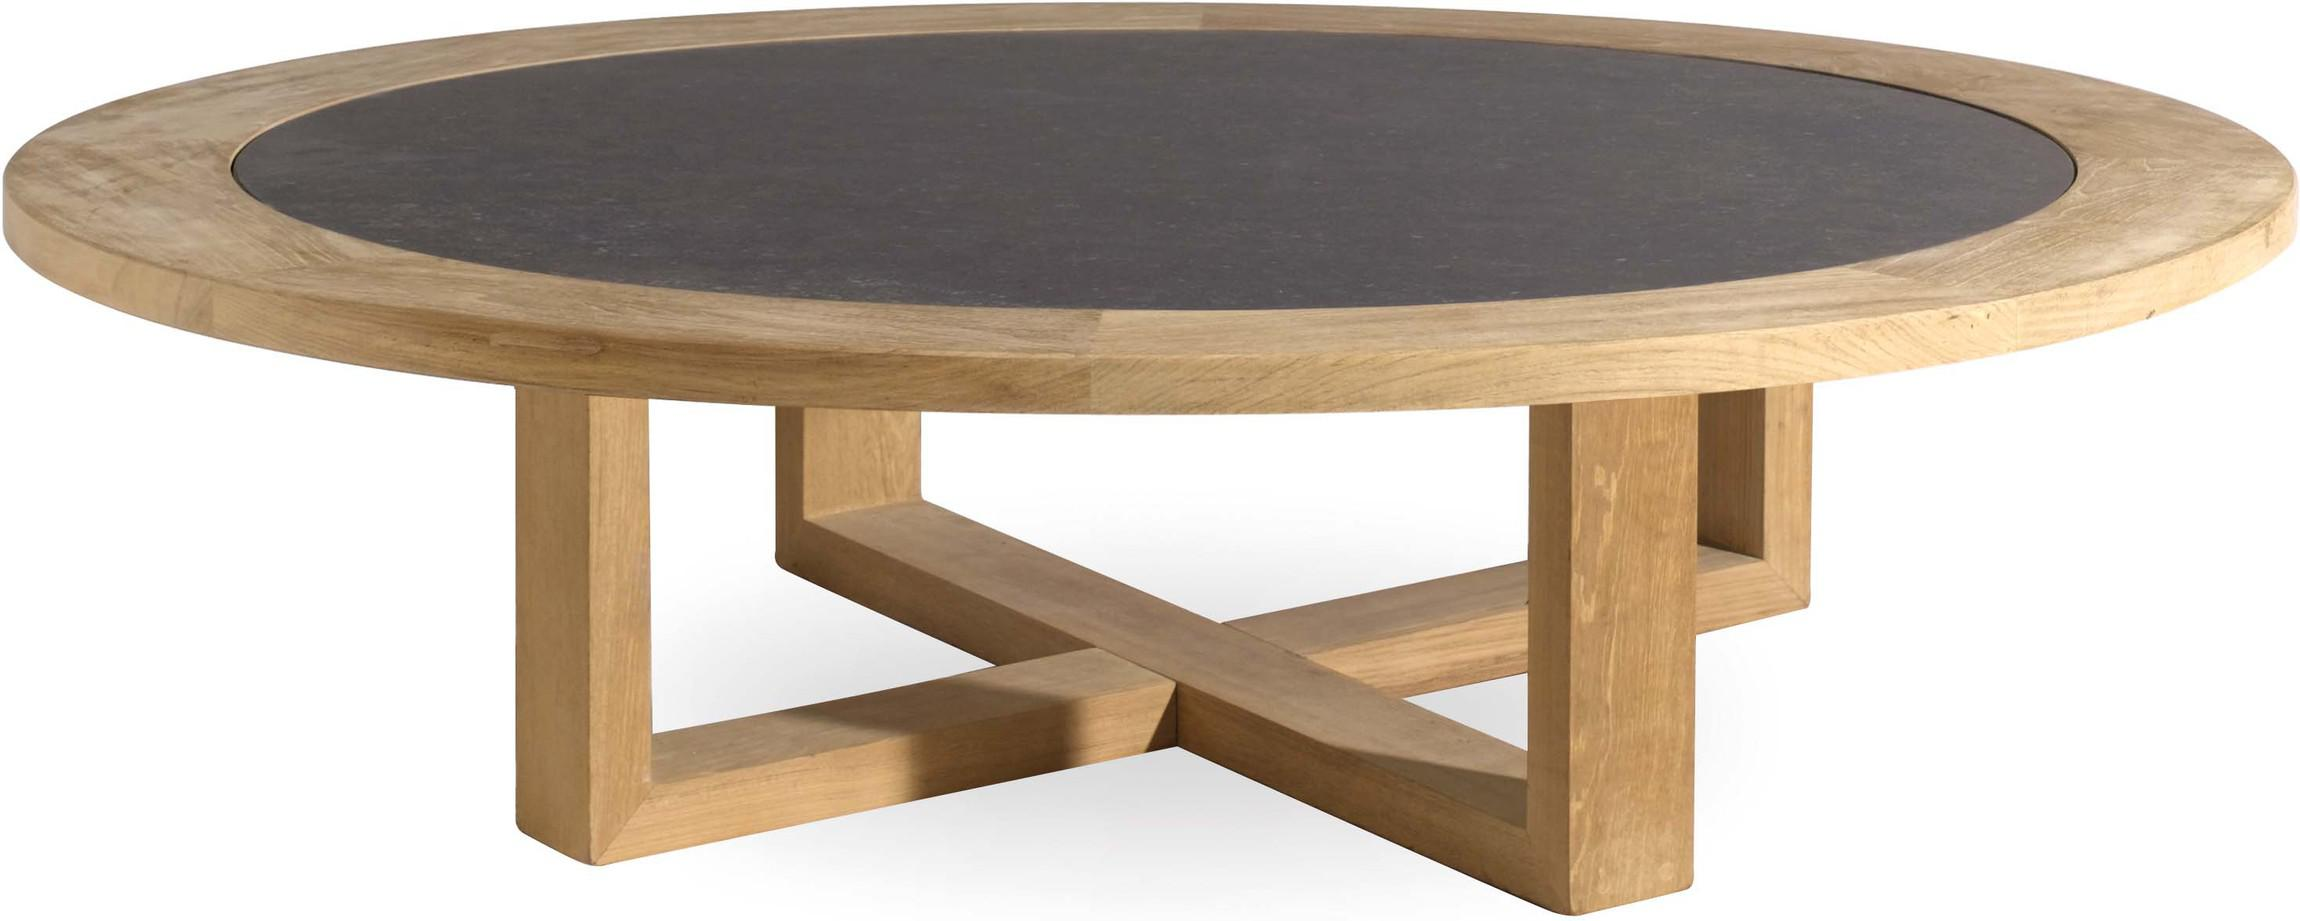 Siena Low table - Teak - 40BD 155